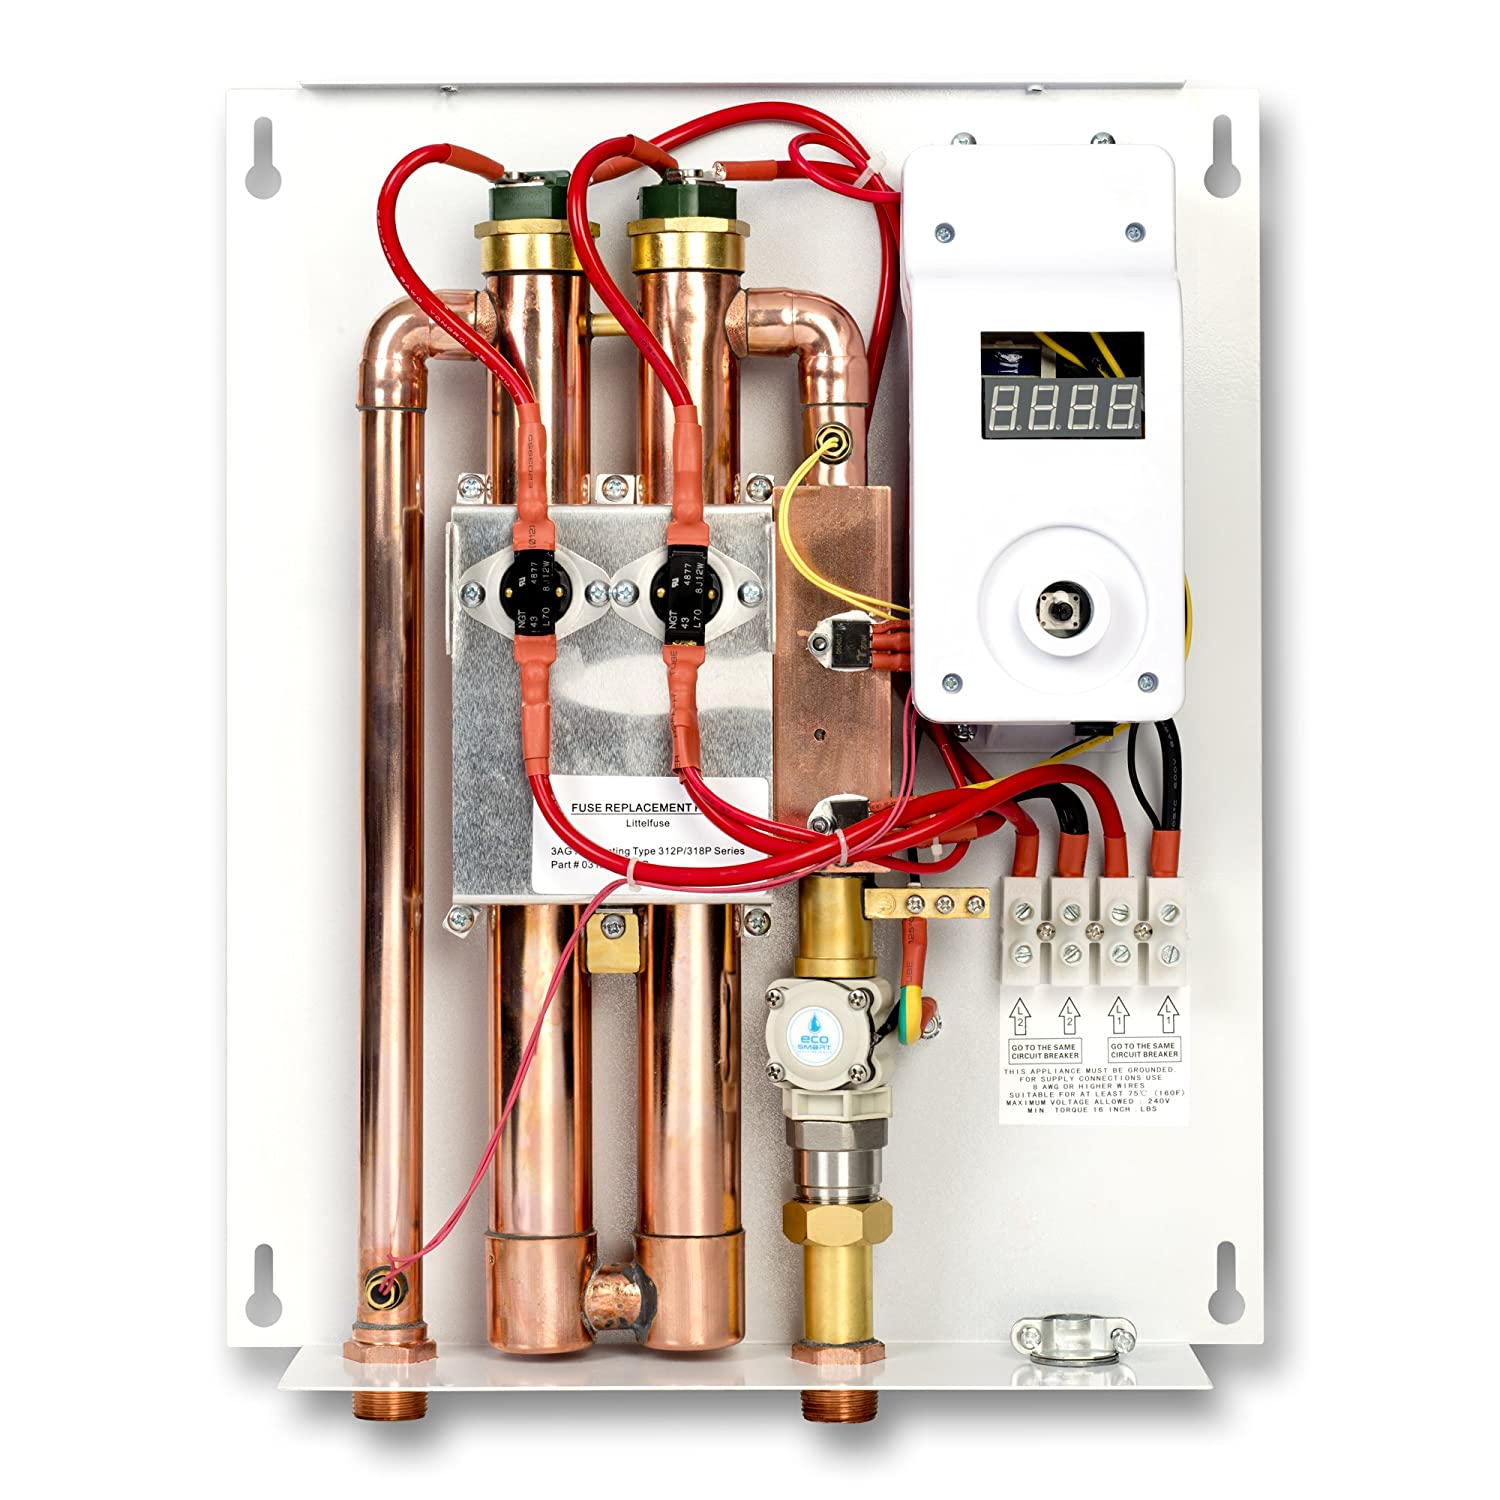 81Tny3DEHPL._SL1500_ how to install a tankless water heater swift consumer wiring diagram for rheem tankless water heater at nearapp.co